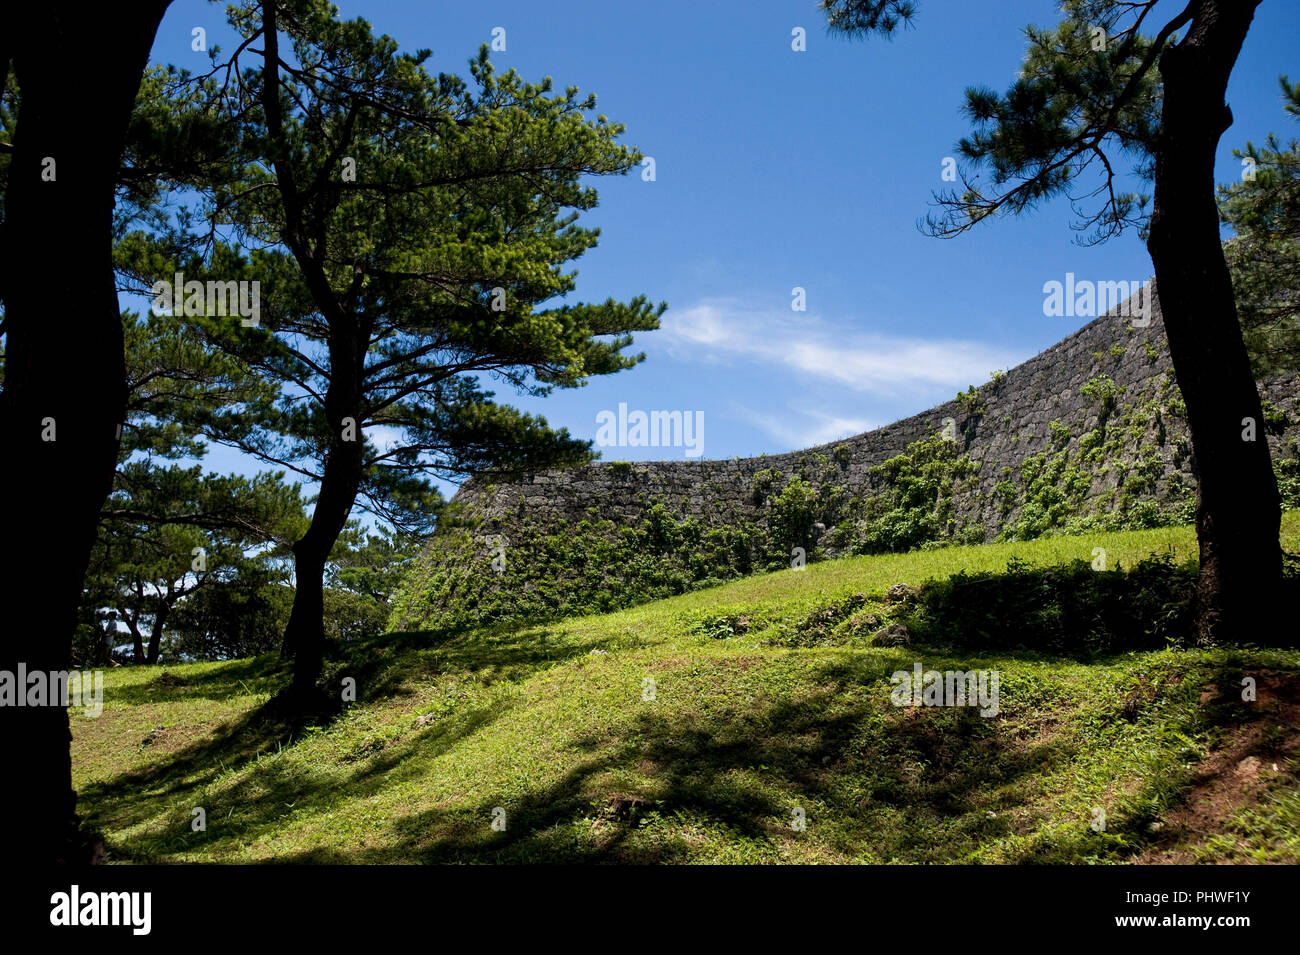 Photo shows Zakimi Castle ruins in Yomitan VILLAGE, Okinawa Prefecture, Japan, on May 20, 2012. Built between 1416 and 1422 by the renowned Ryukyuan m - Stock Image